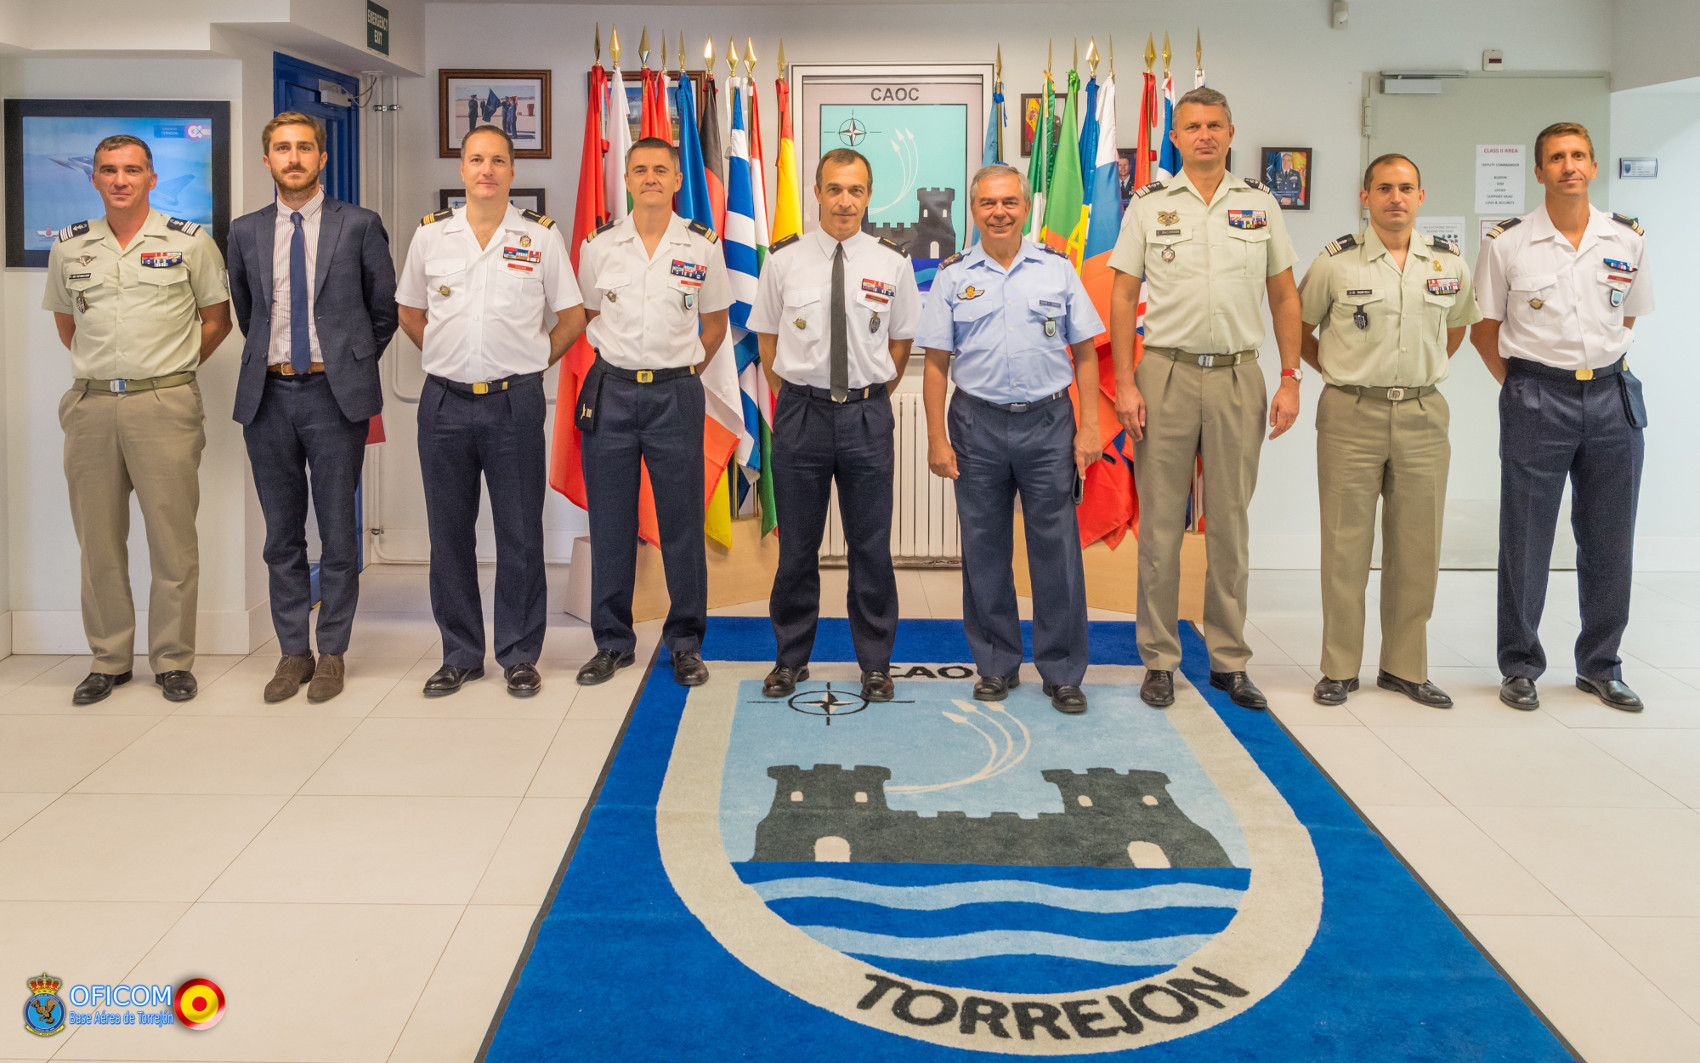 The Chief of the Euro Atlantic Division from the French Defence Staff visits the CAOC Torrejón